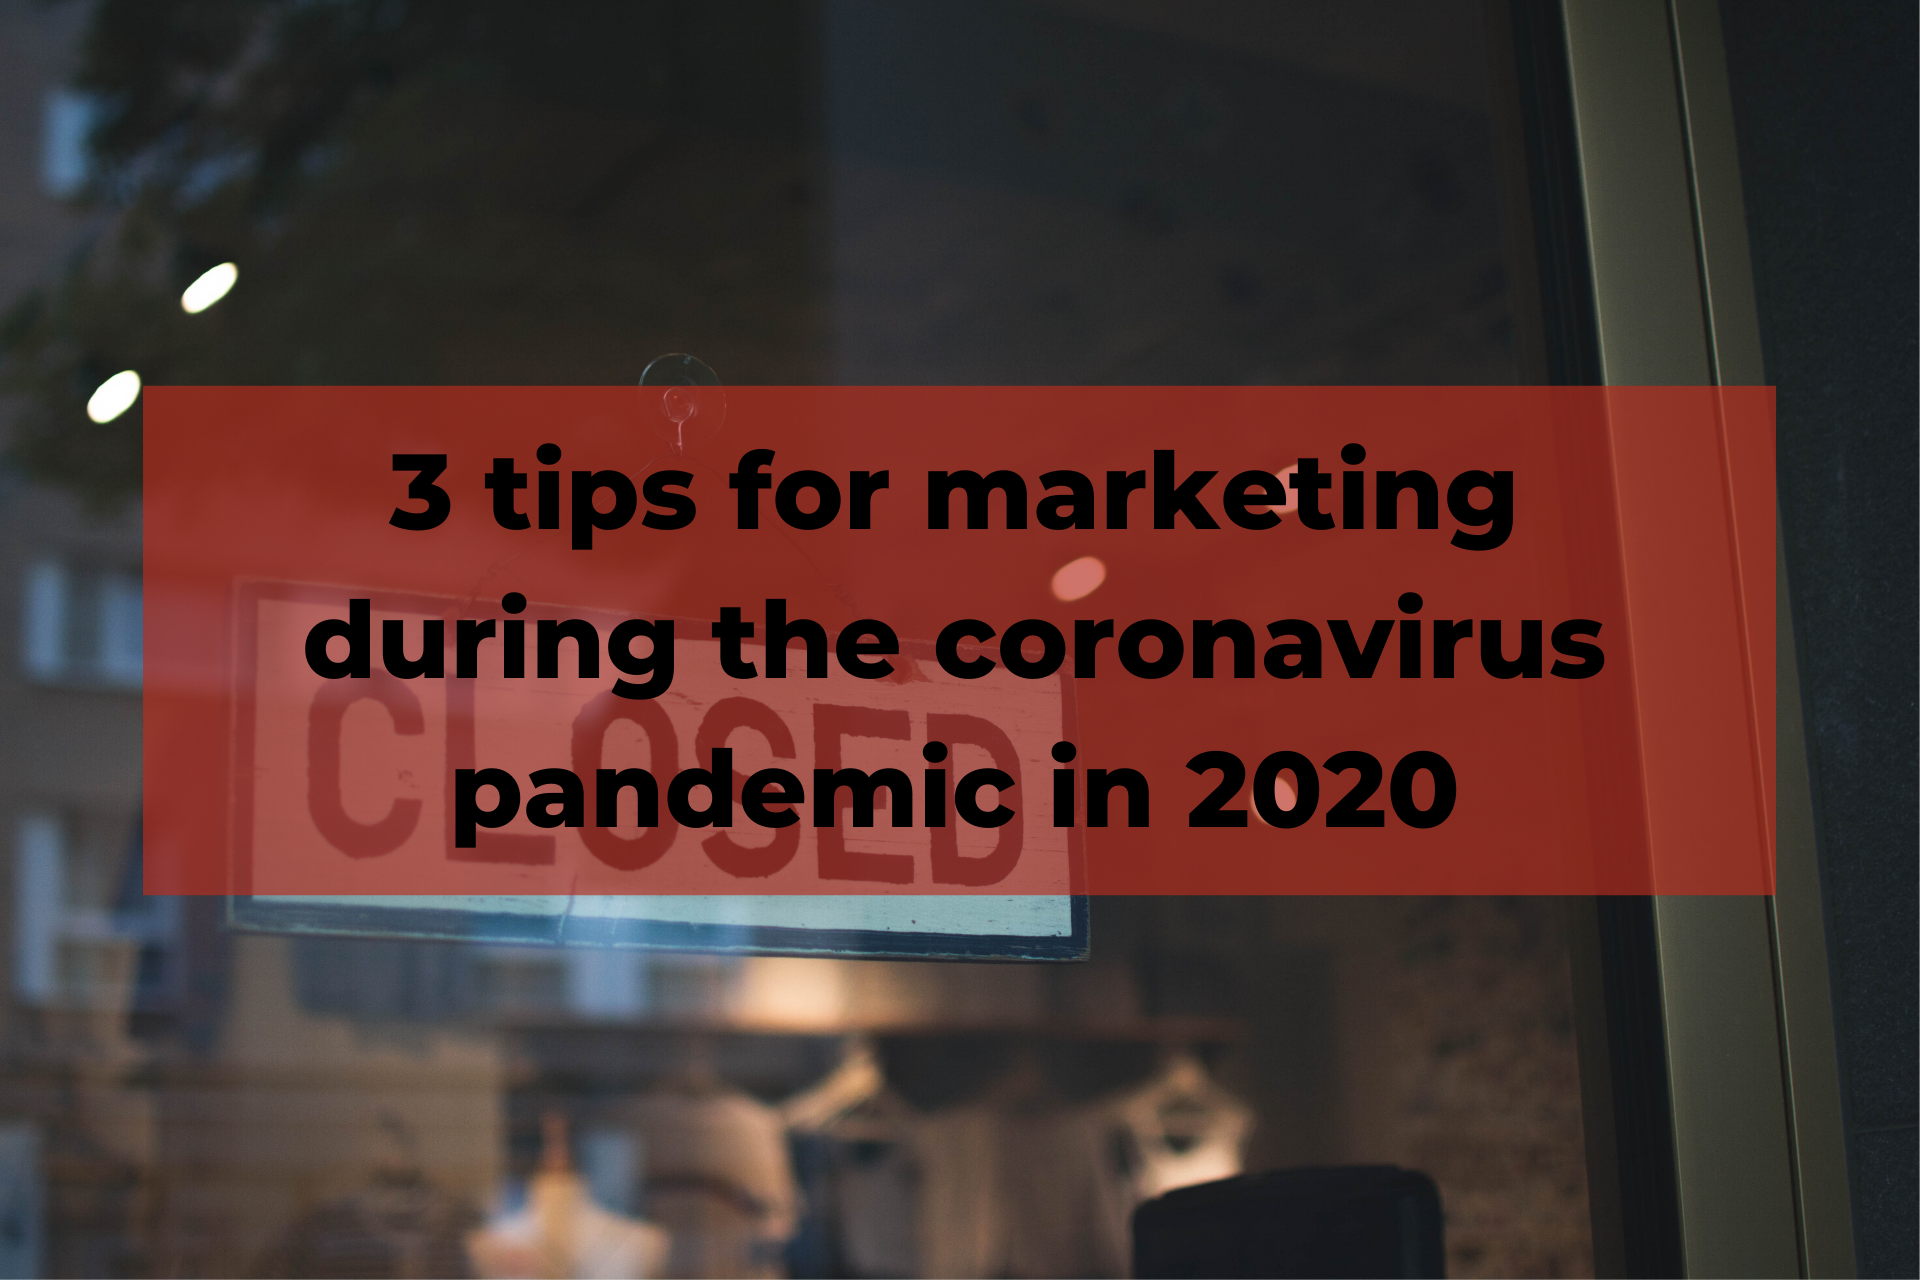 Marketing during the coronavirus